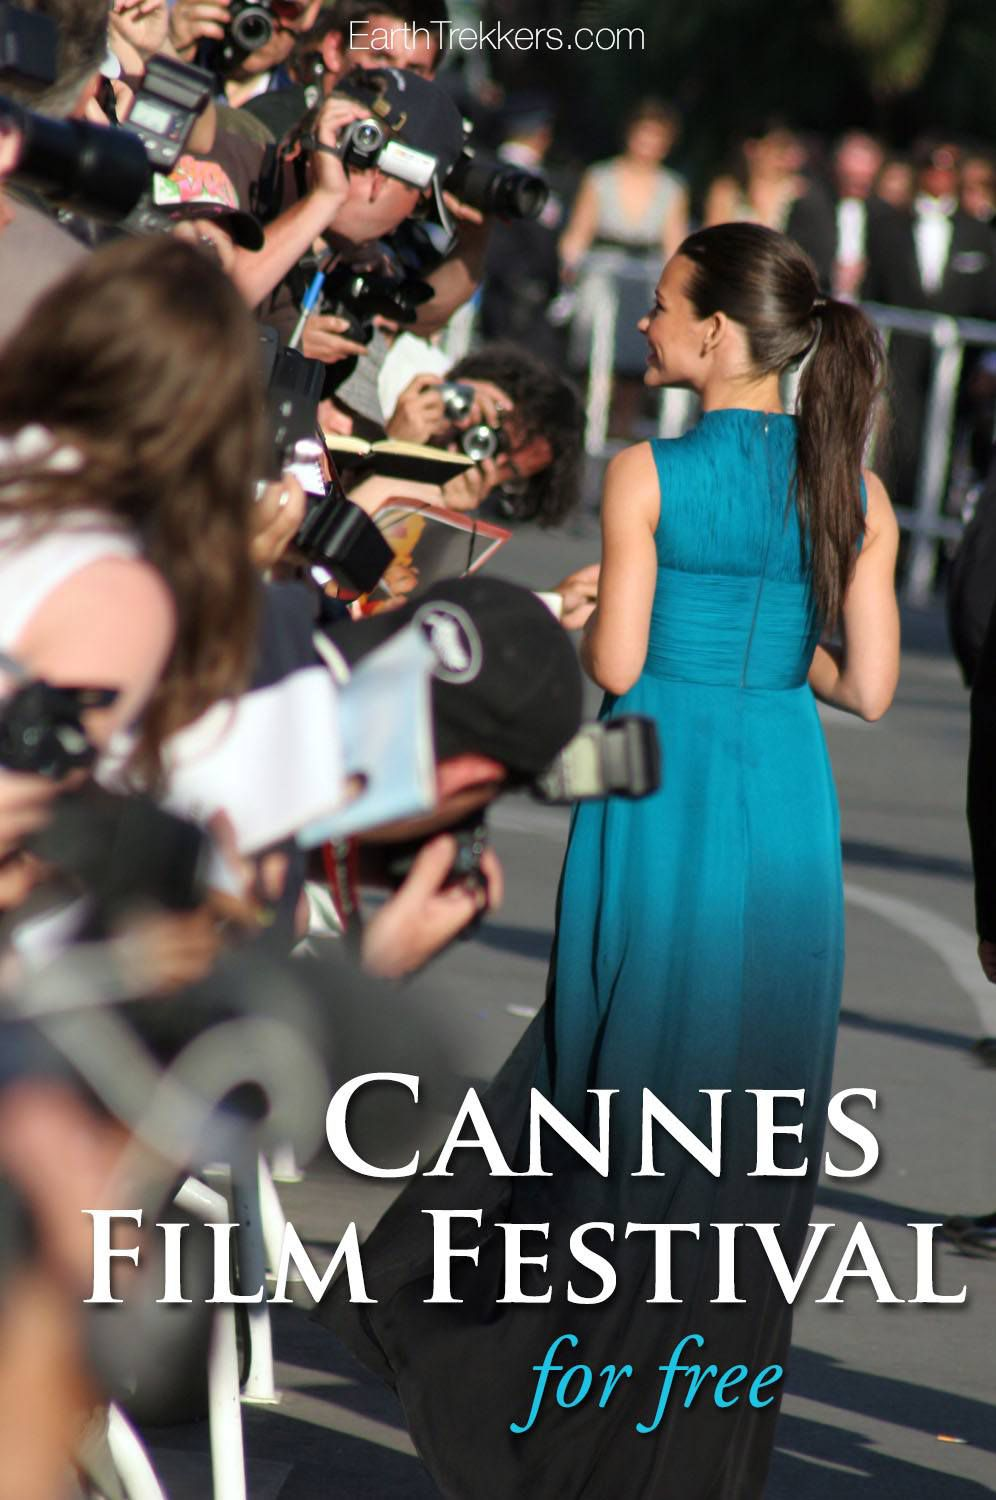 Cannes Film Festival for free